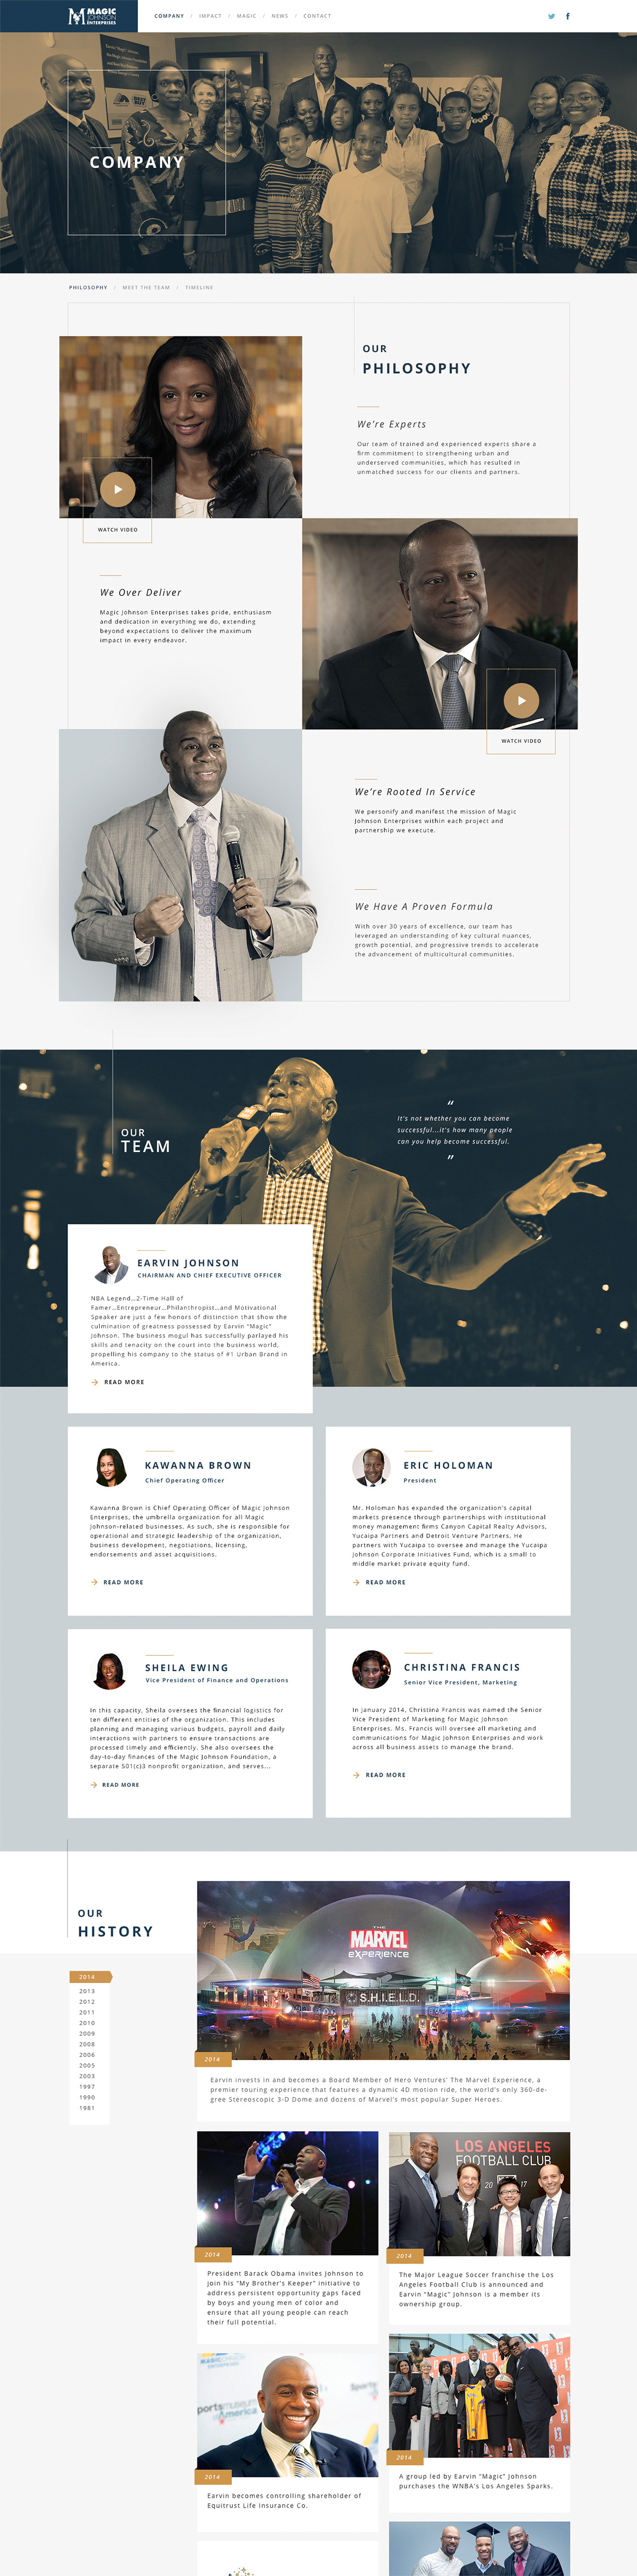 Site Design For Quantasy Earvin Magic Johnson Has Become The Most Powerful African American Man In Busi Web Design Trends Web Design Web Design Inspiration